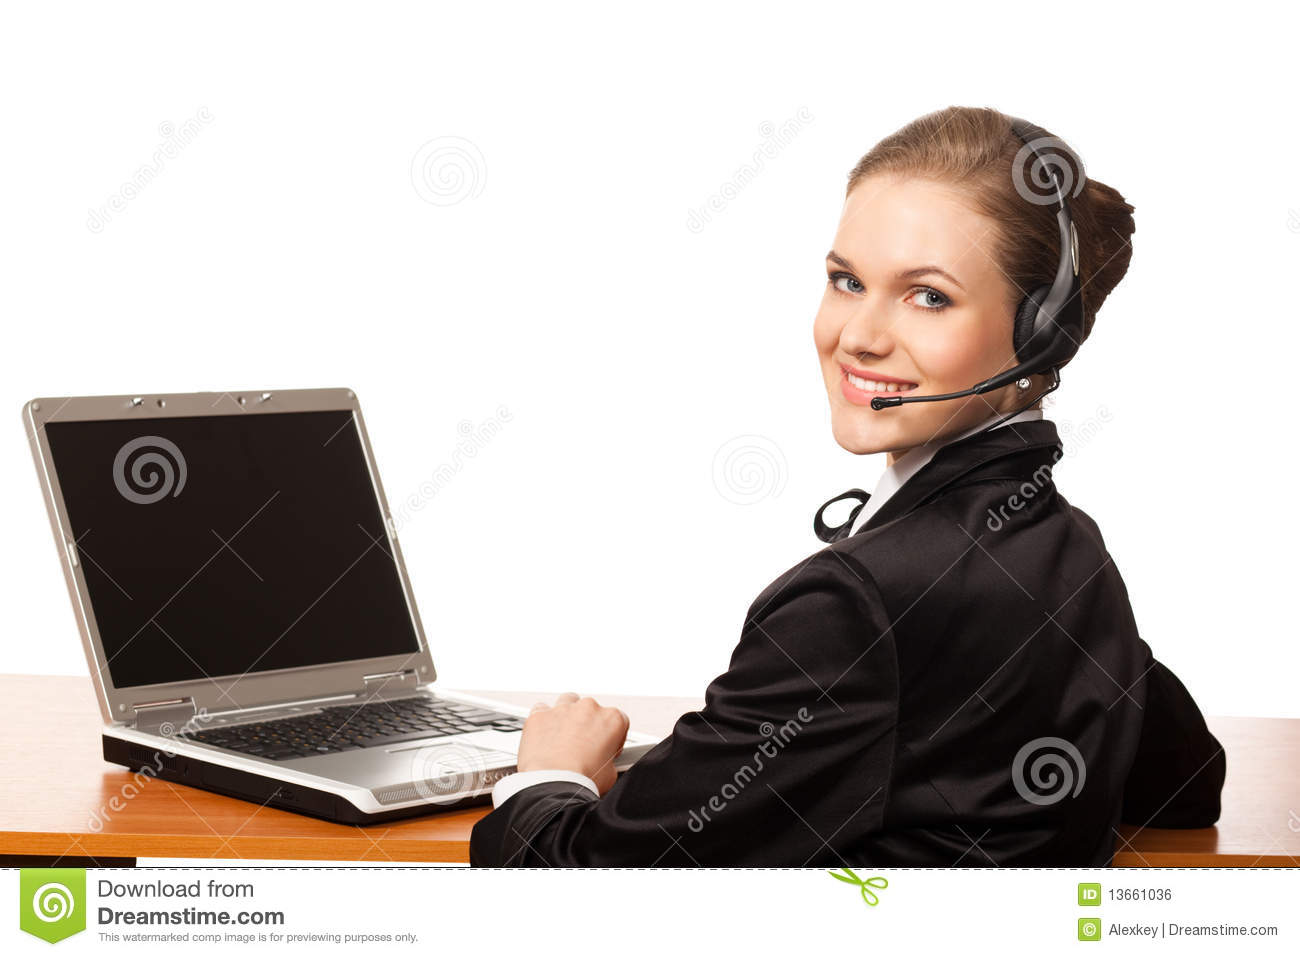 Call Center Operator Royalty Free Stock Image - Image: 13661036